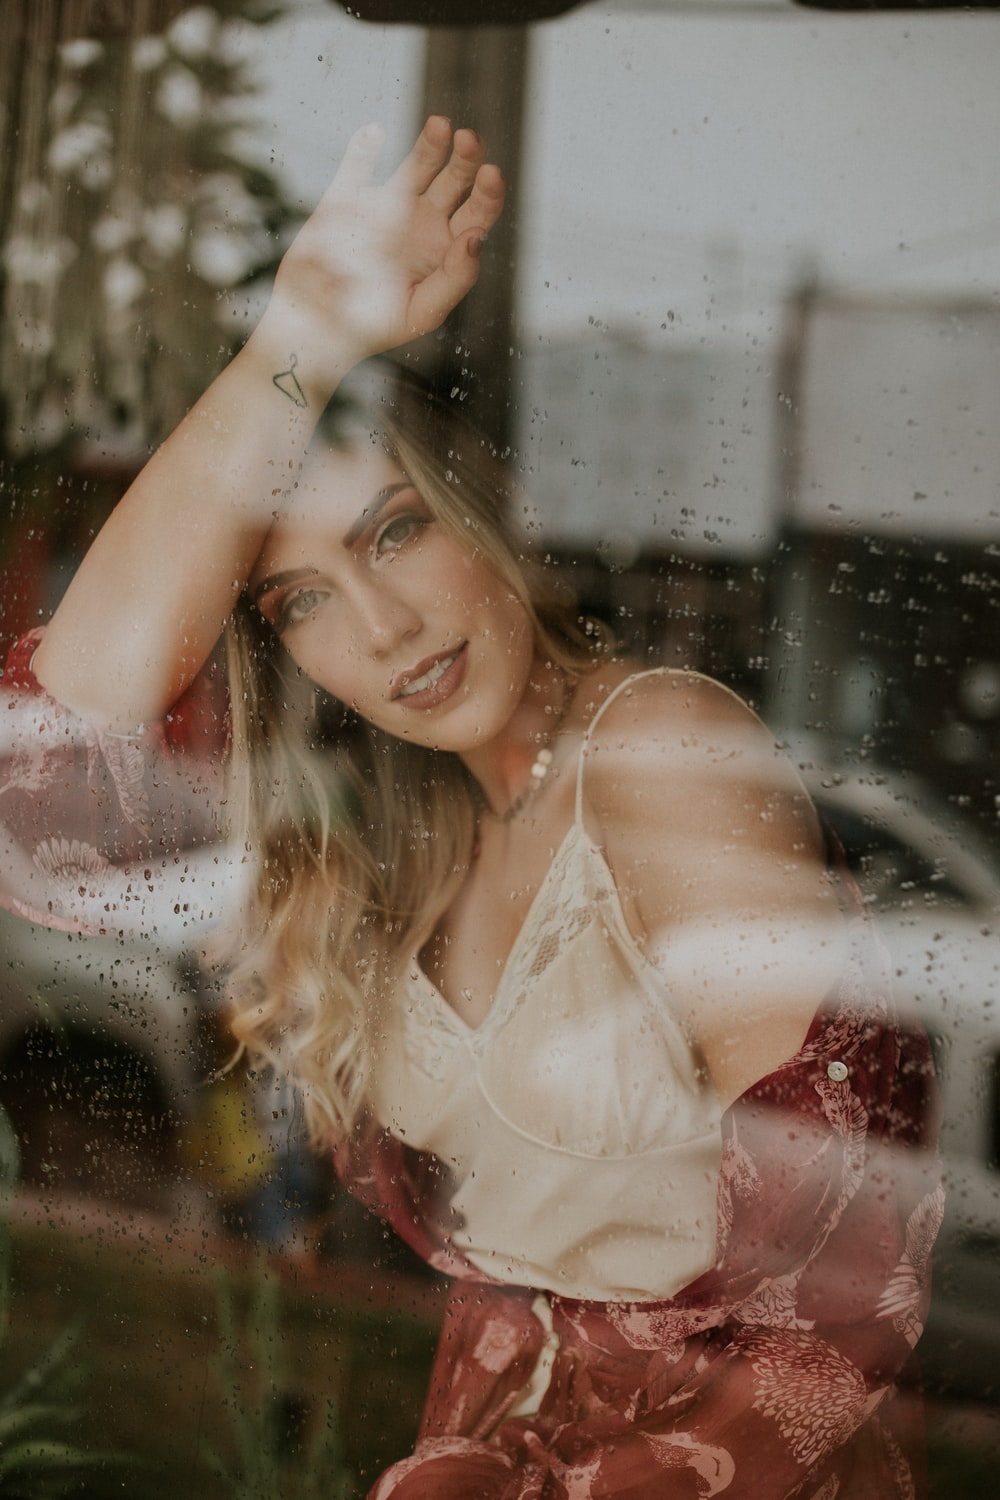 woman leaning on glass wall